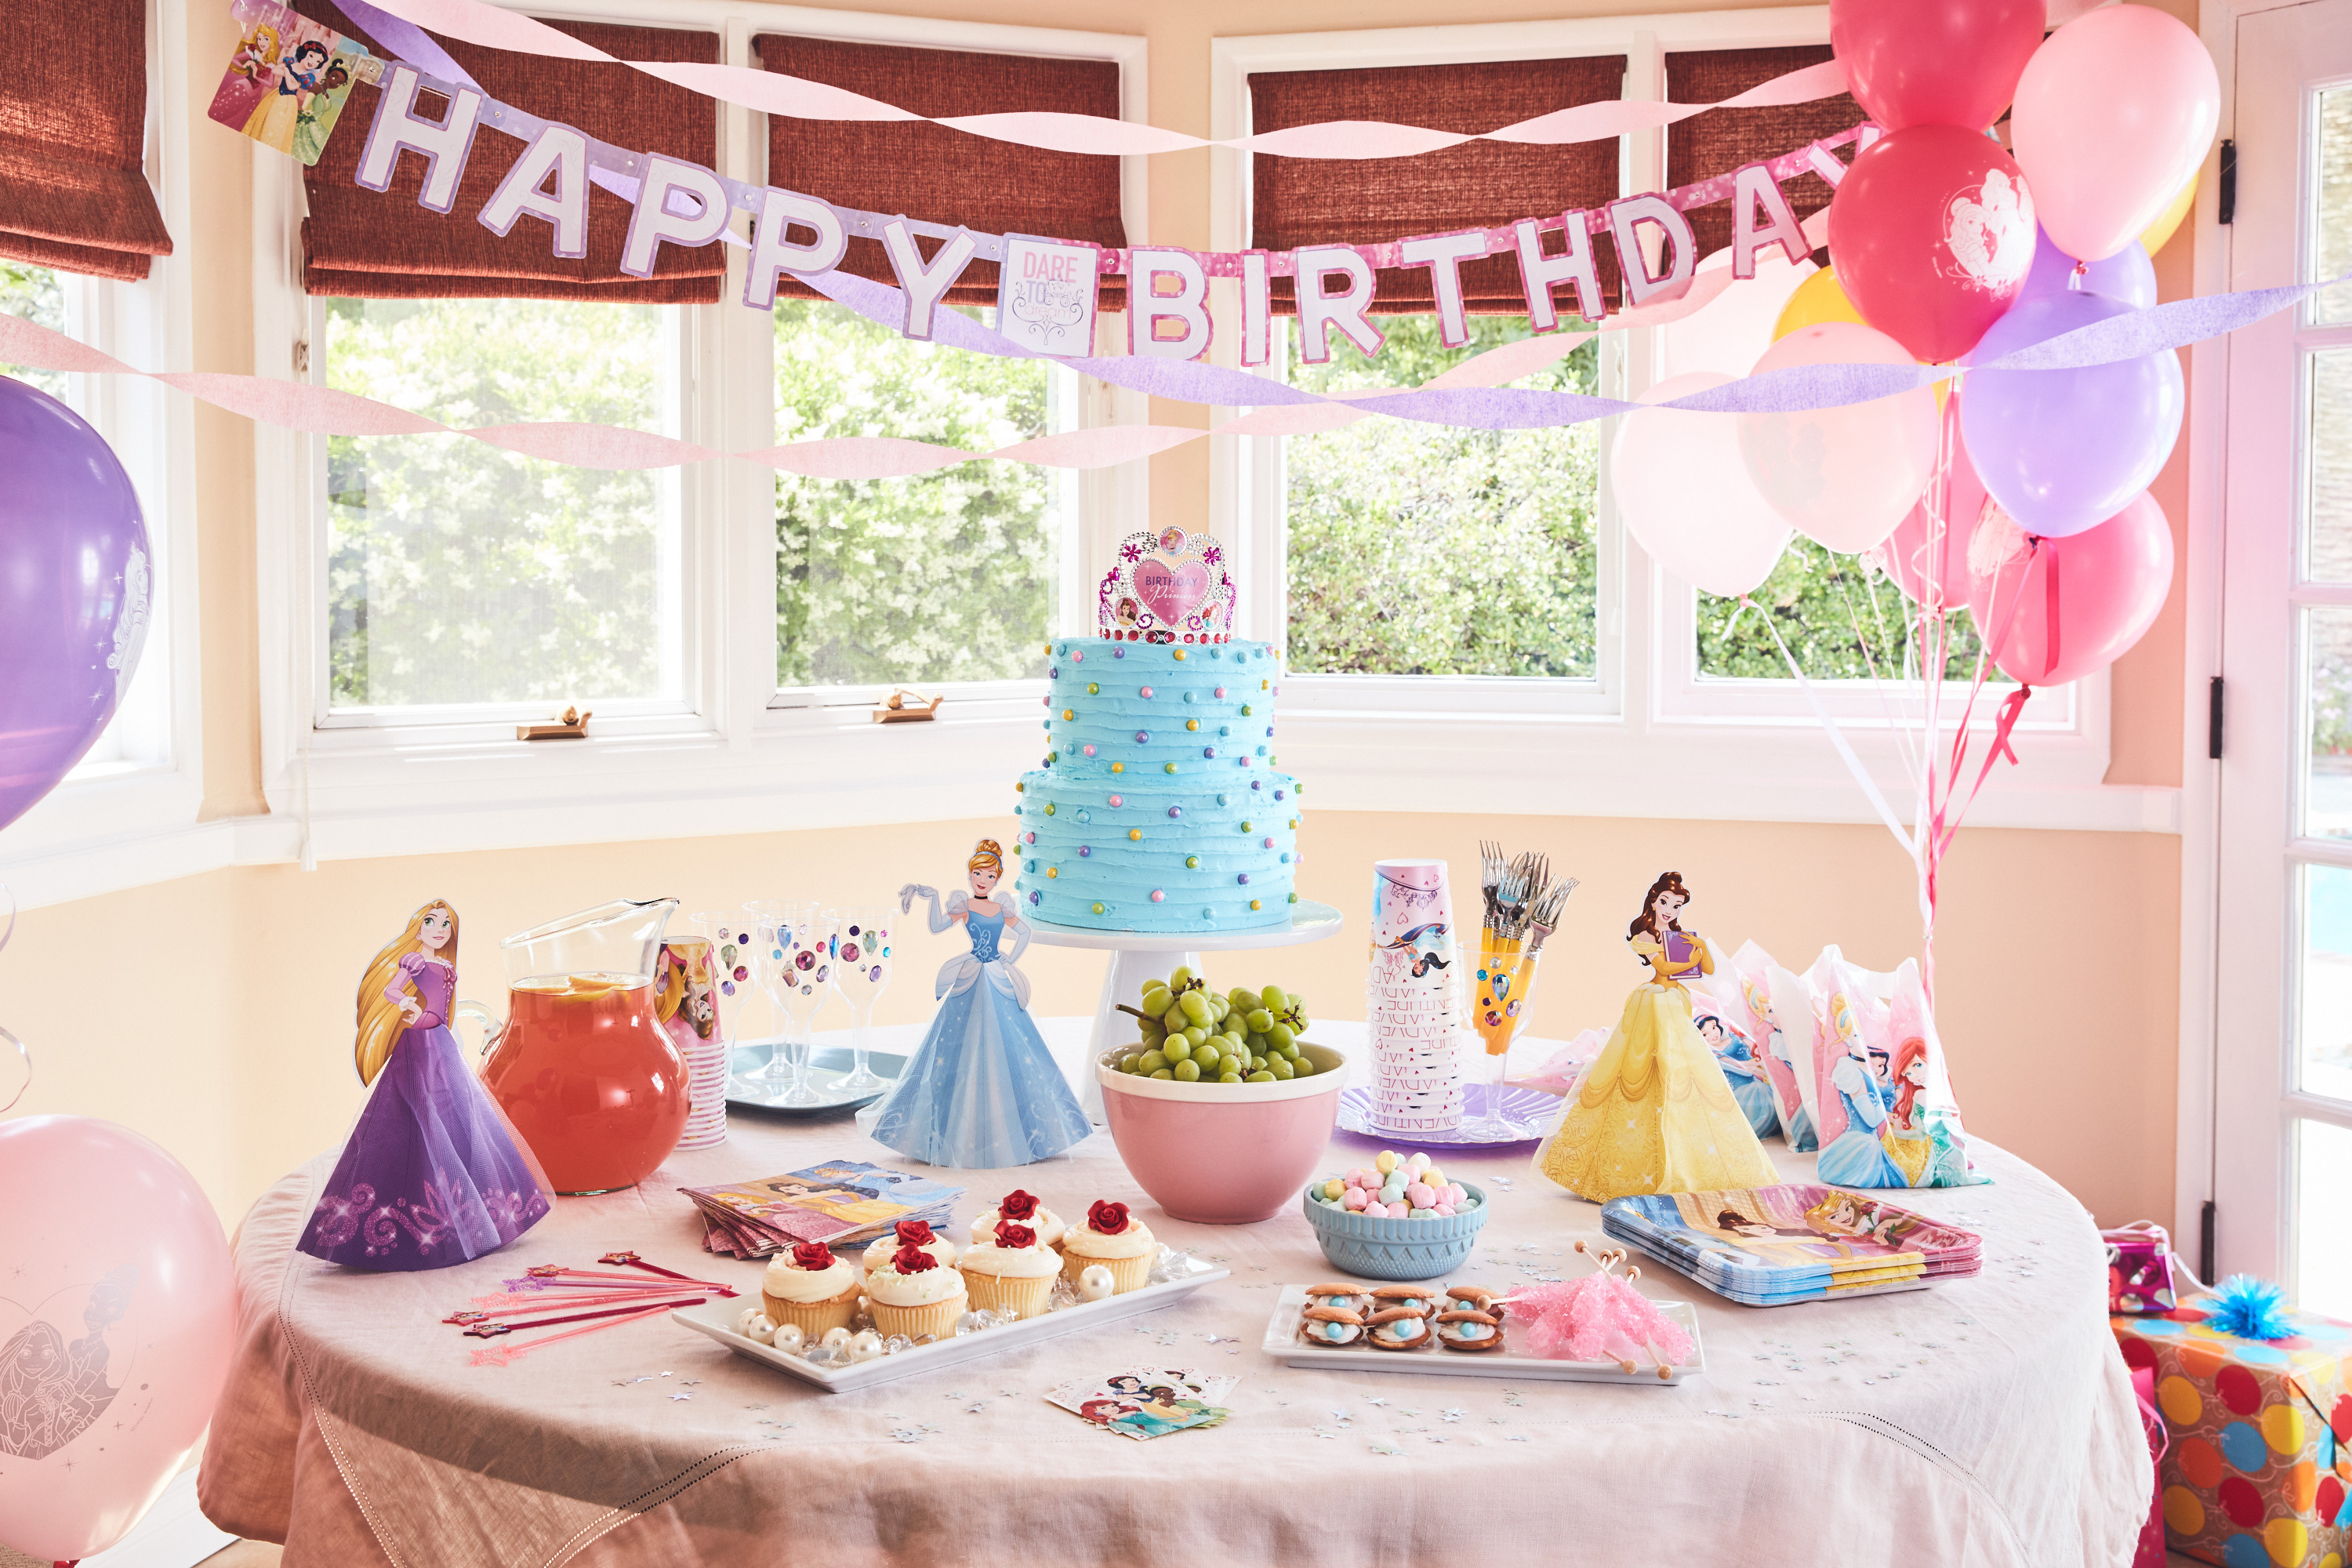 Best ideas about Disney Birthday Party . Save or Pin Disney Princess Birthday Party Now.